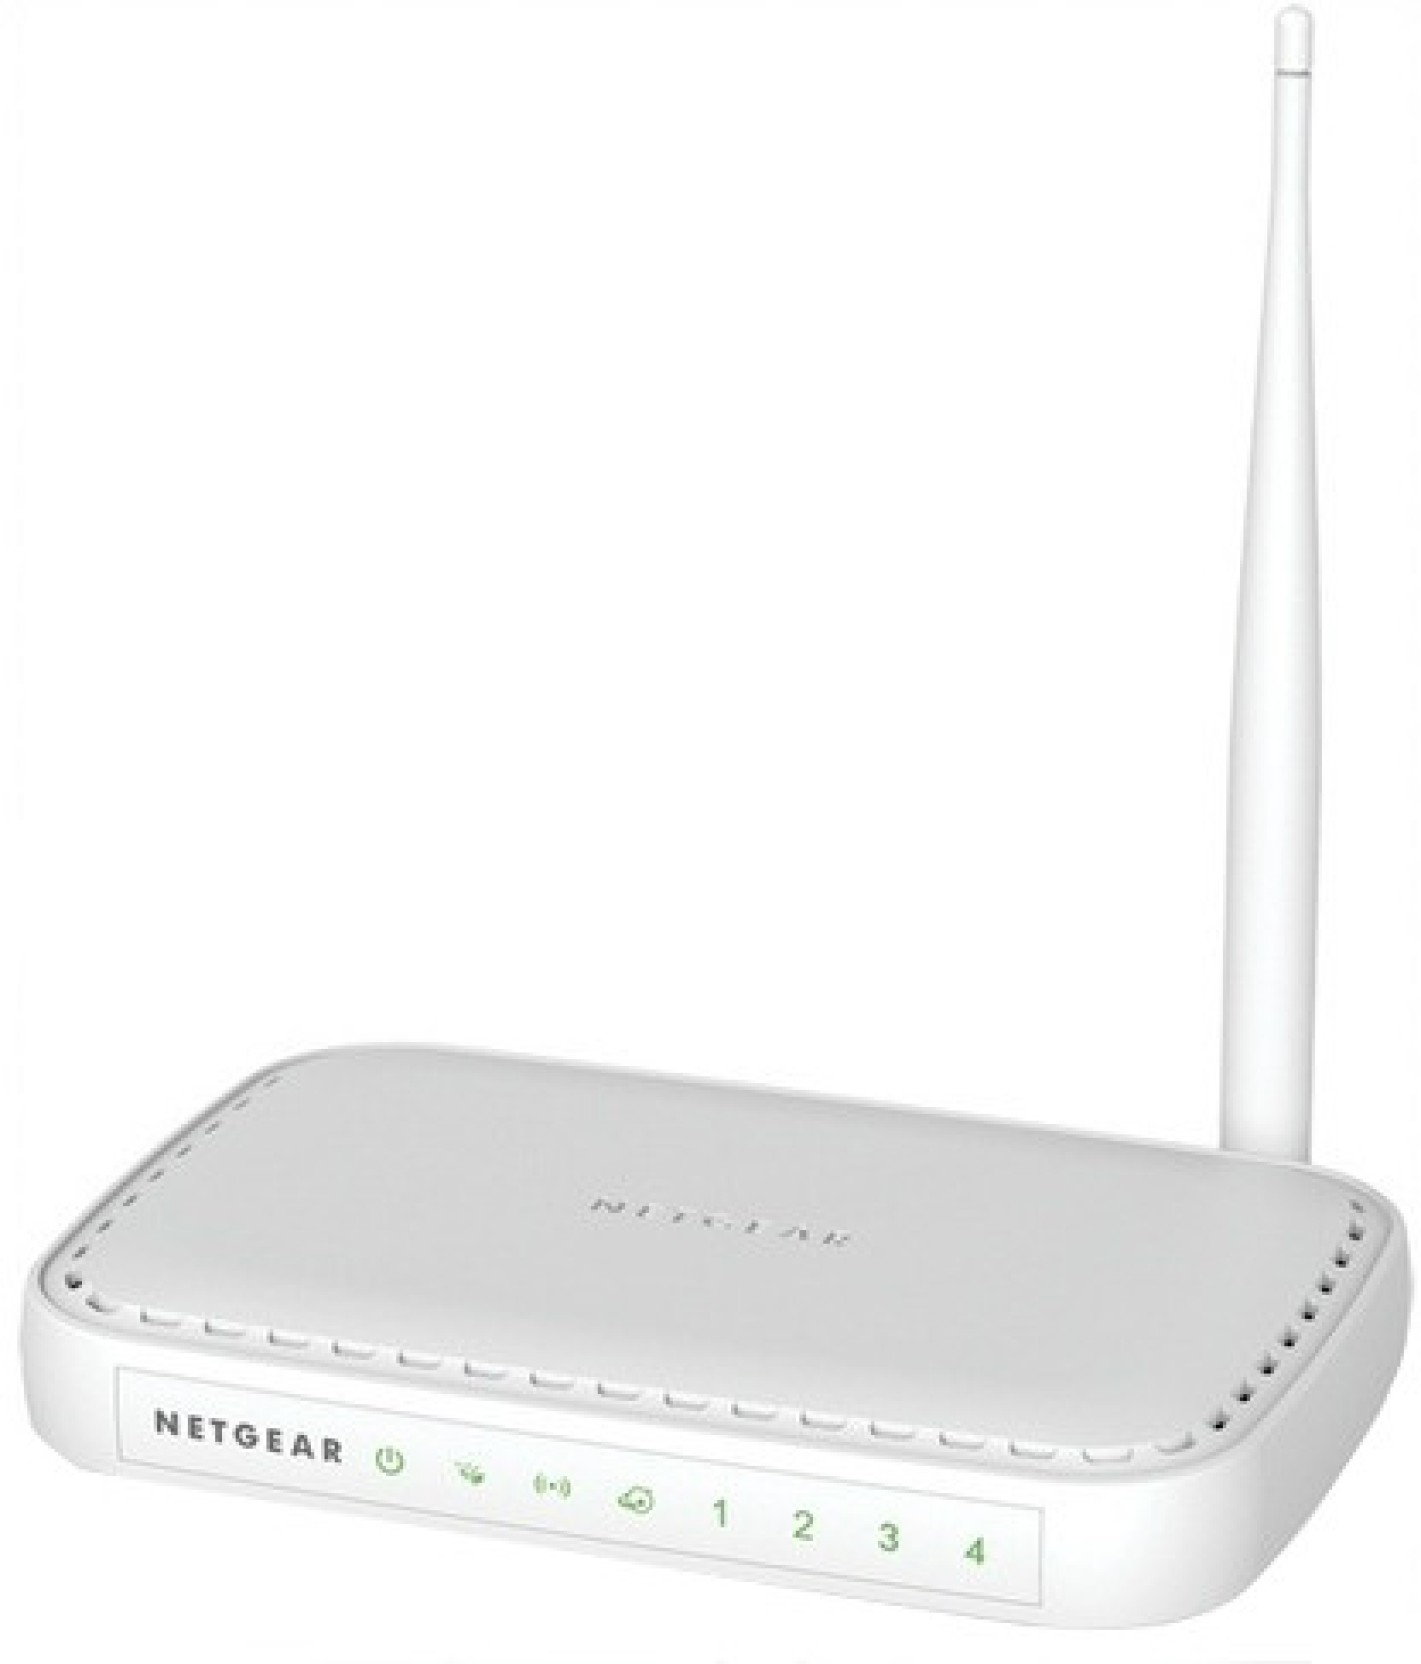 Netgear JNR1010 N150 Wireless Router - Netgear : Flipkart.com - photo#9